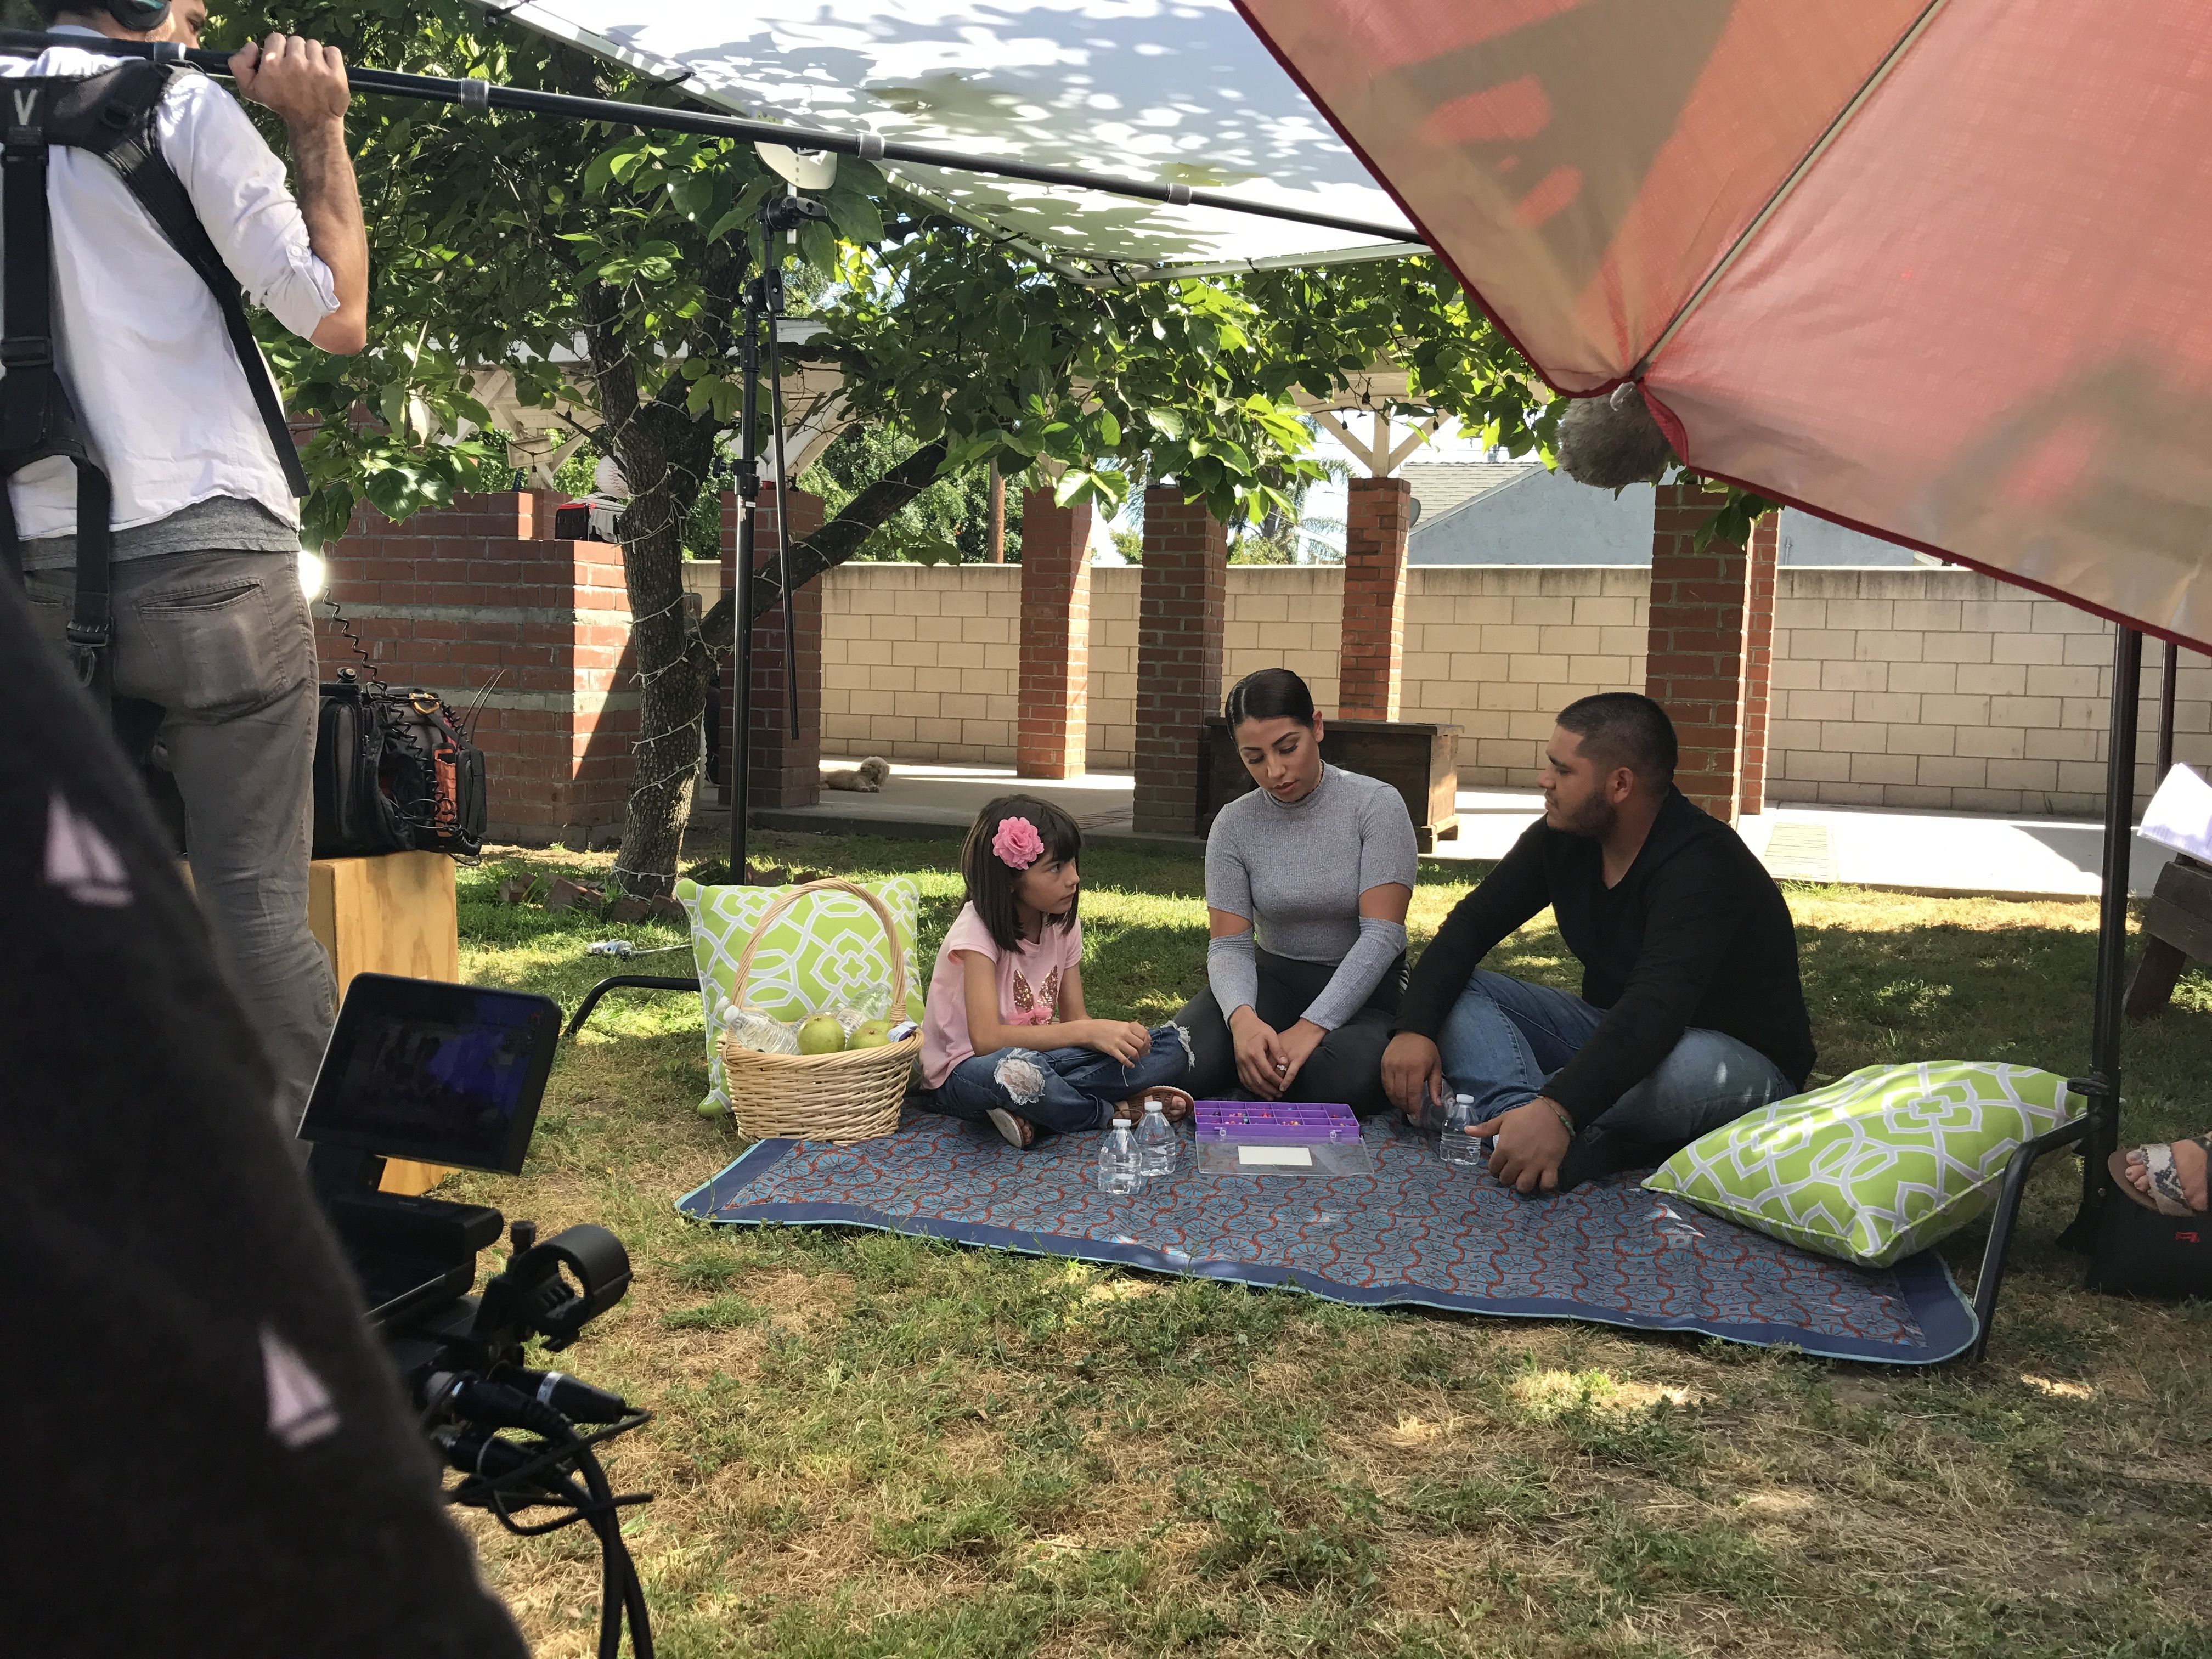 Abriendo Puertas/Opening Doors features family in video to provide advice to parents on bullying and immigration issues. (Photo: Business Wire)